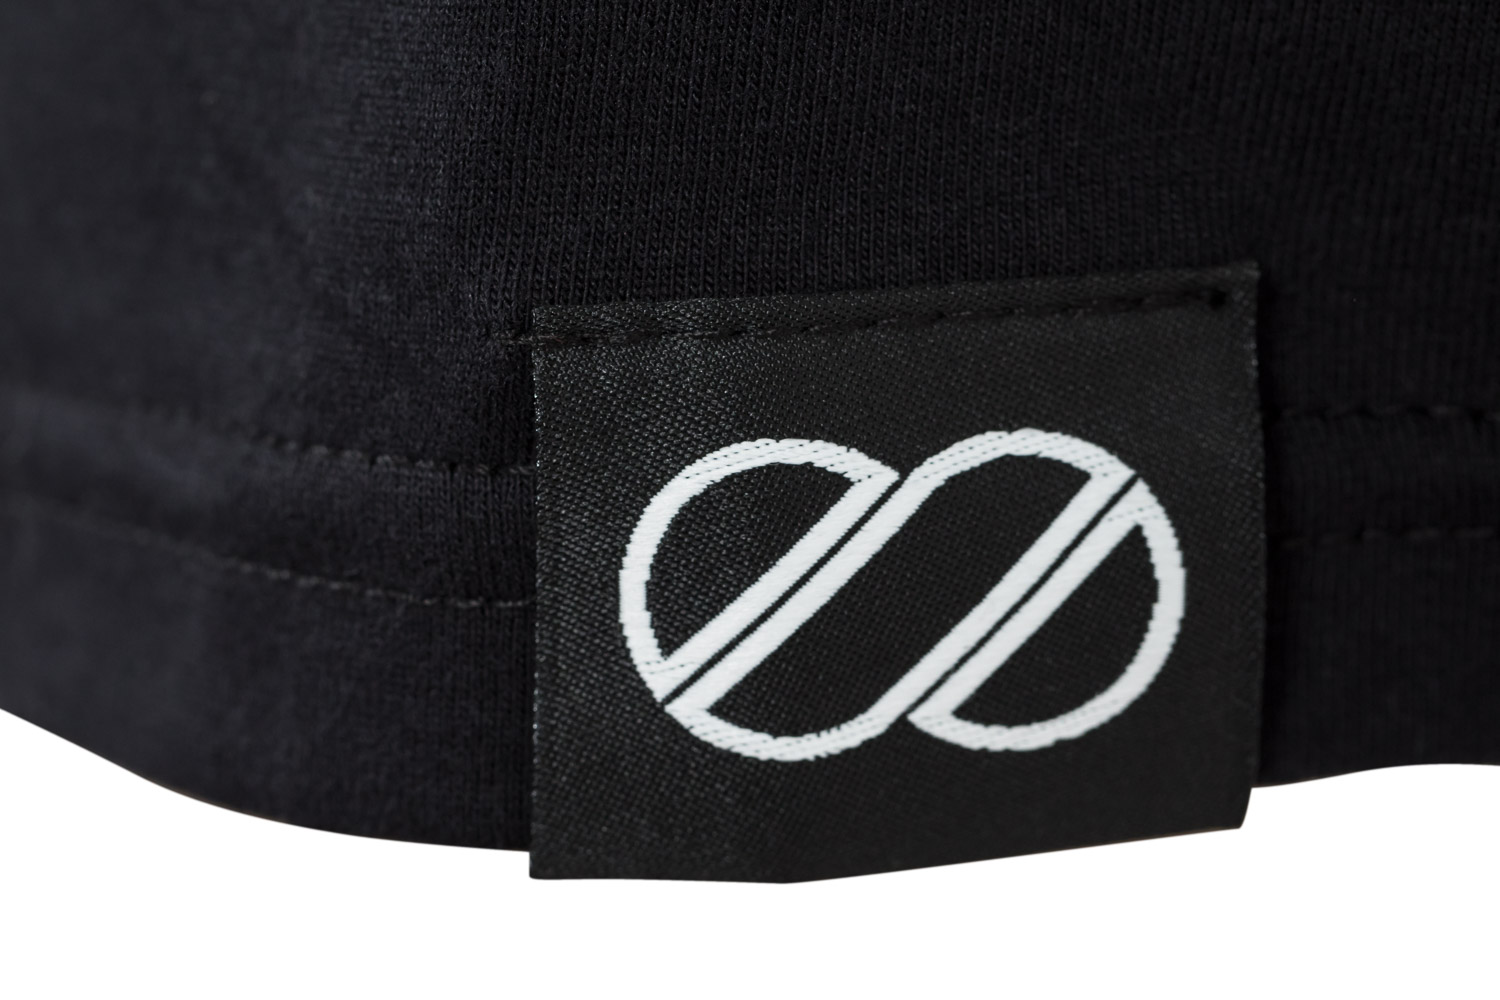 8bar-tshirt-detail-black